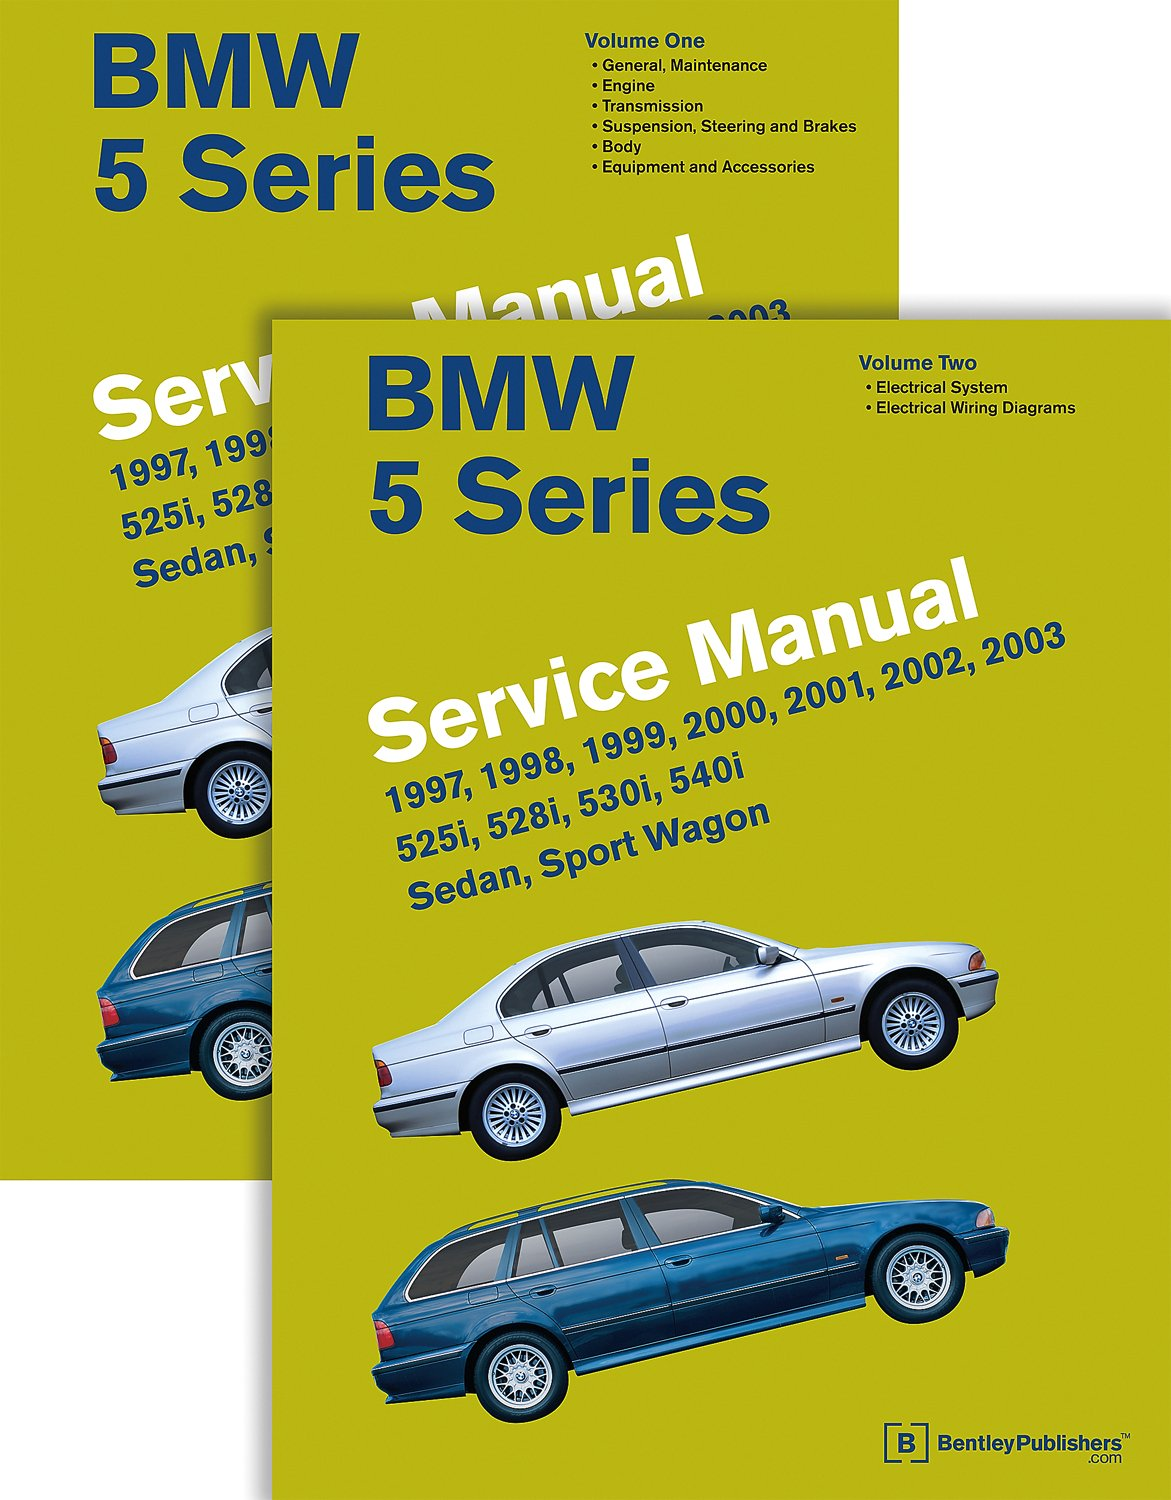 bmw 5 series e39 service manual 1997 1998 1999 2000 2001 bmw 5 series e39 service manual 1997 1998 1999 2000 2001 2002 2003 525i 528i 530i 540i sedan sport wagon amazon co uk bentley publishers